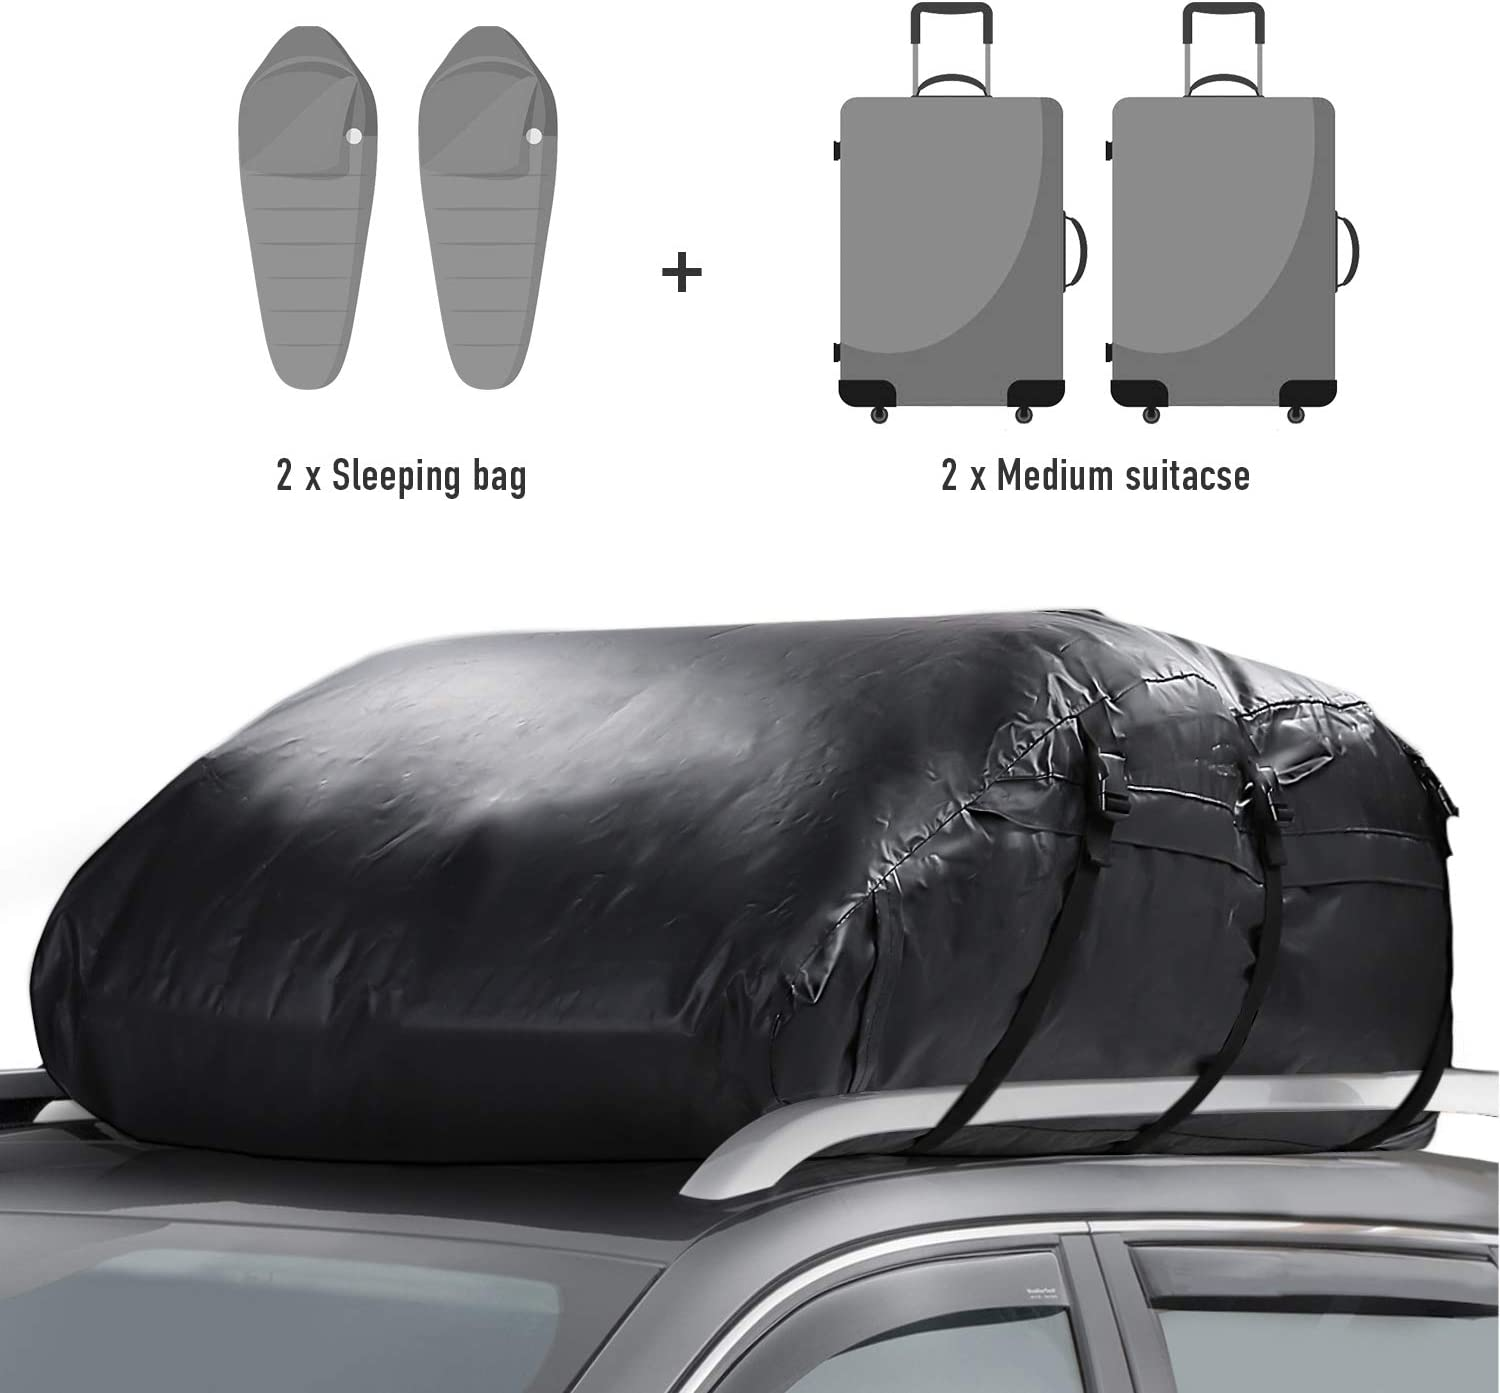 Car Top Carrier 17 Cubic Feet Waterproof Cargo Carrier Heavy Duty Traps Rooftop Cargo Carrier for All Vehicles Cargo Bag Box Storage Luggage